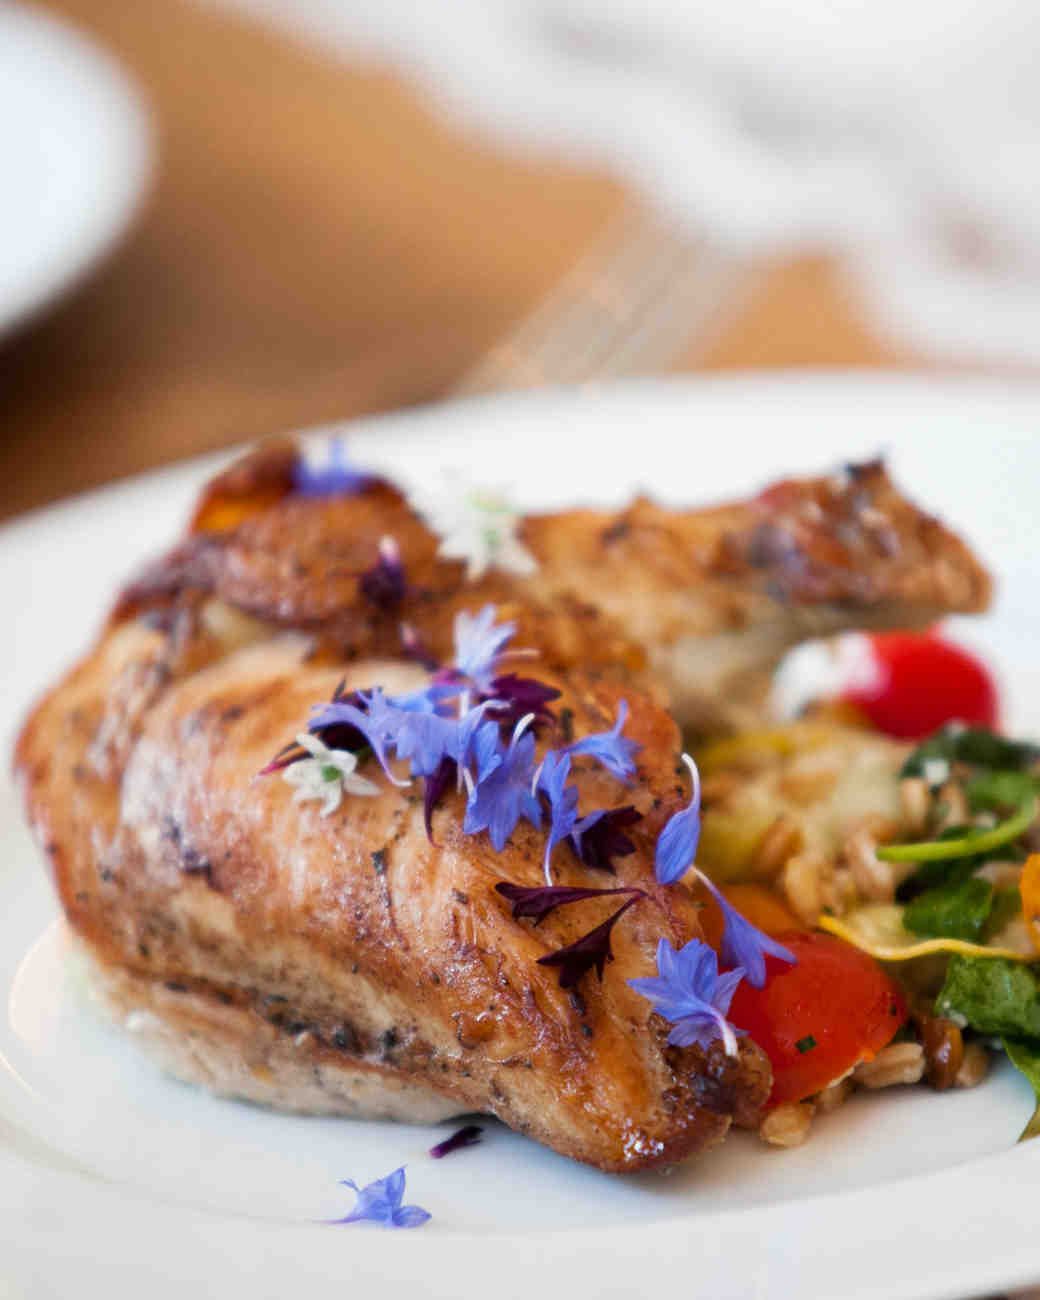 A Chicken Dish with Herbs